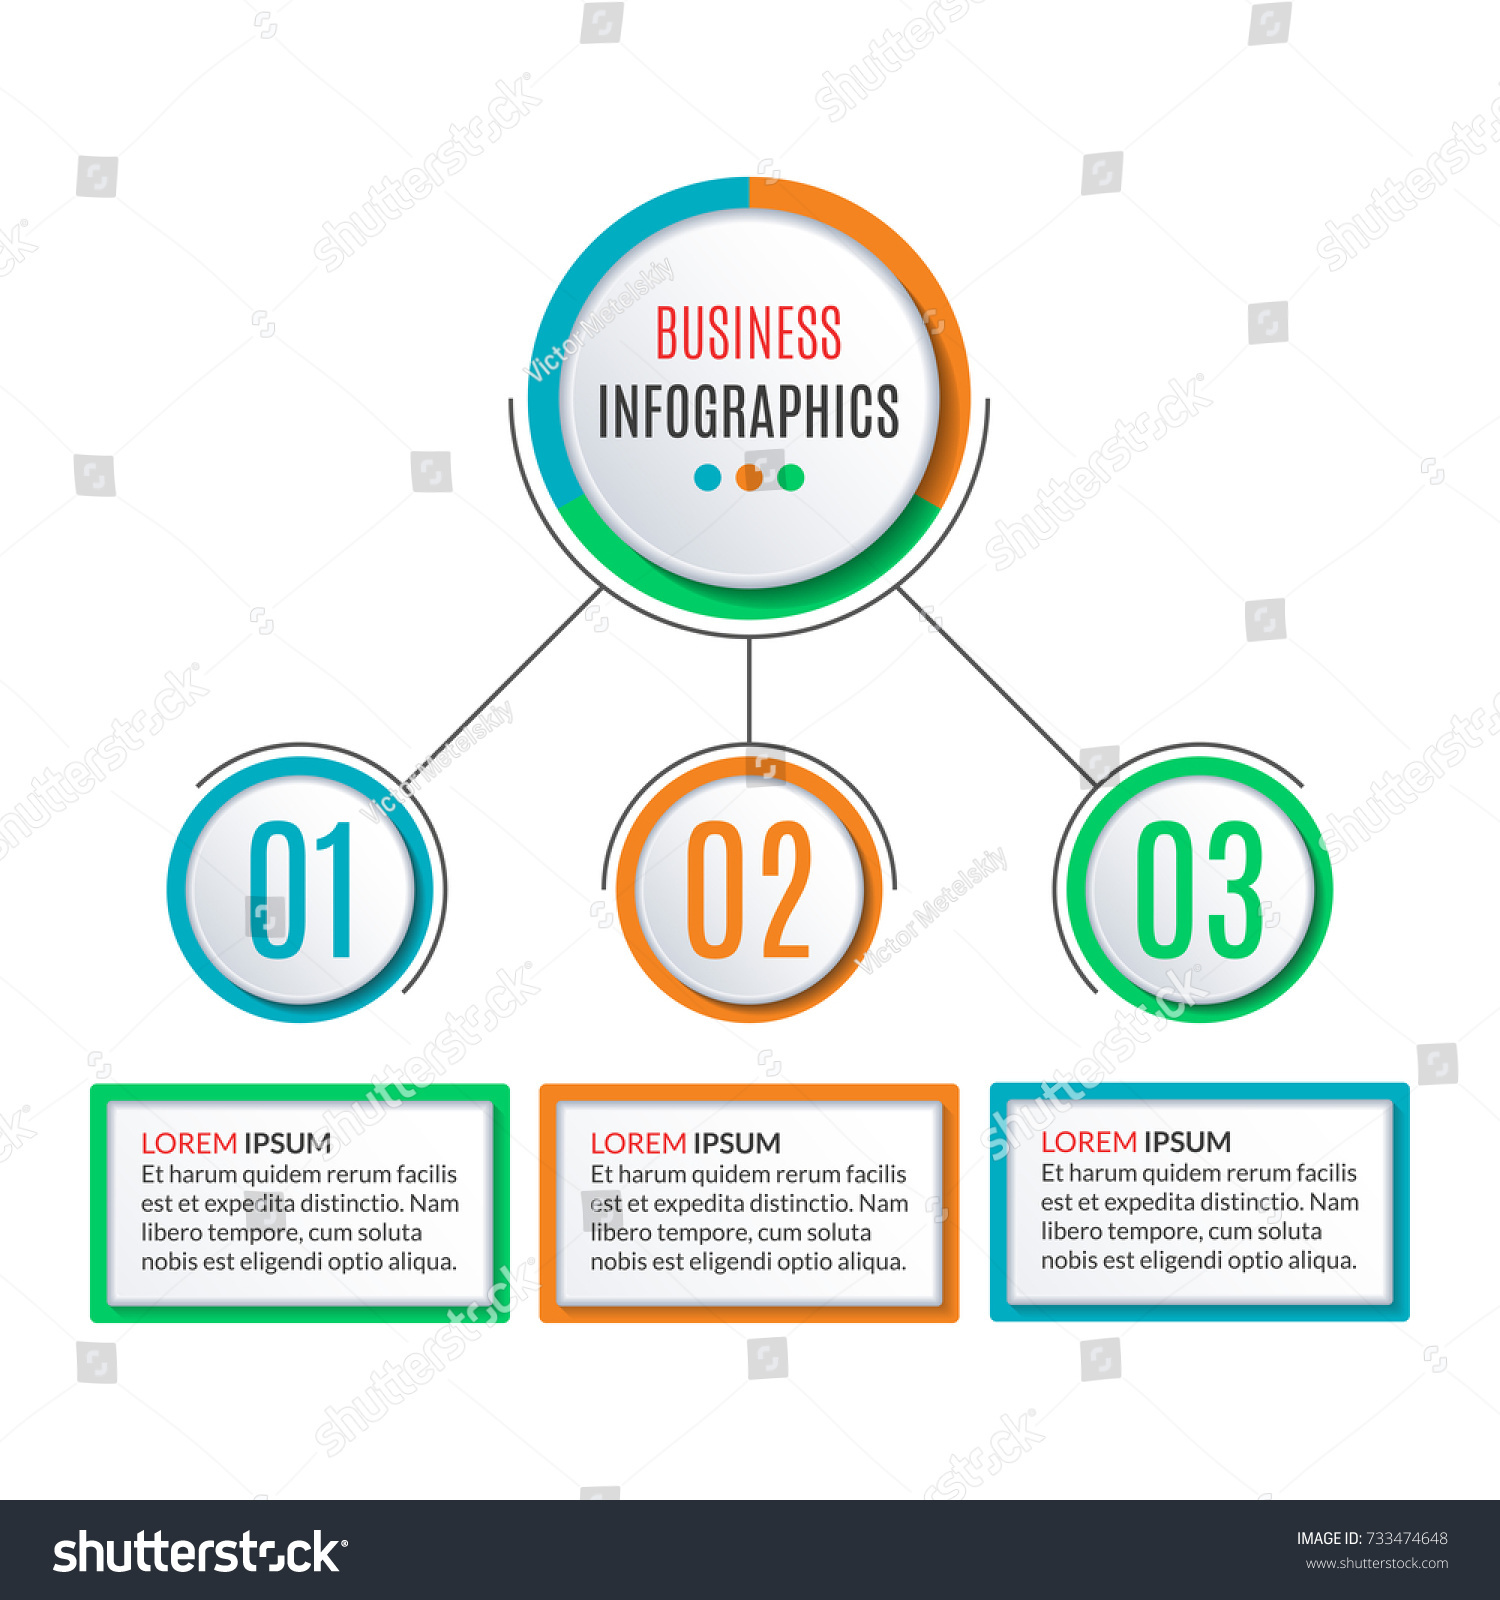 Royalty Free Stock Illustration Of 3 Steps Circle Infographics Process Flow Diagram Levels Template Business Background With Options Data